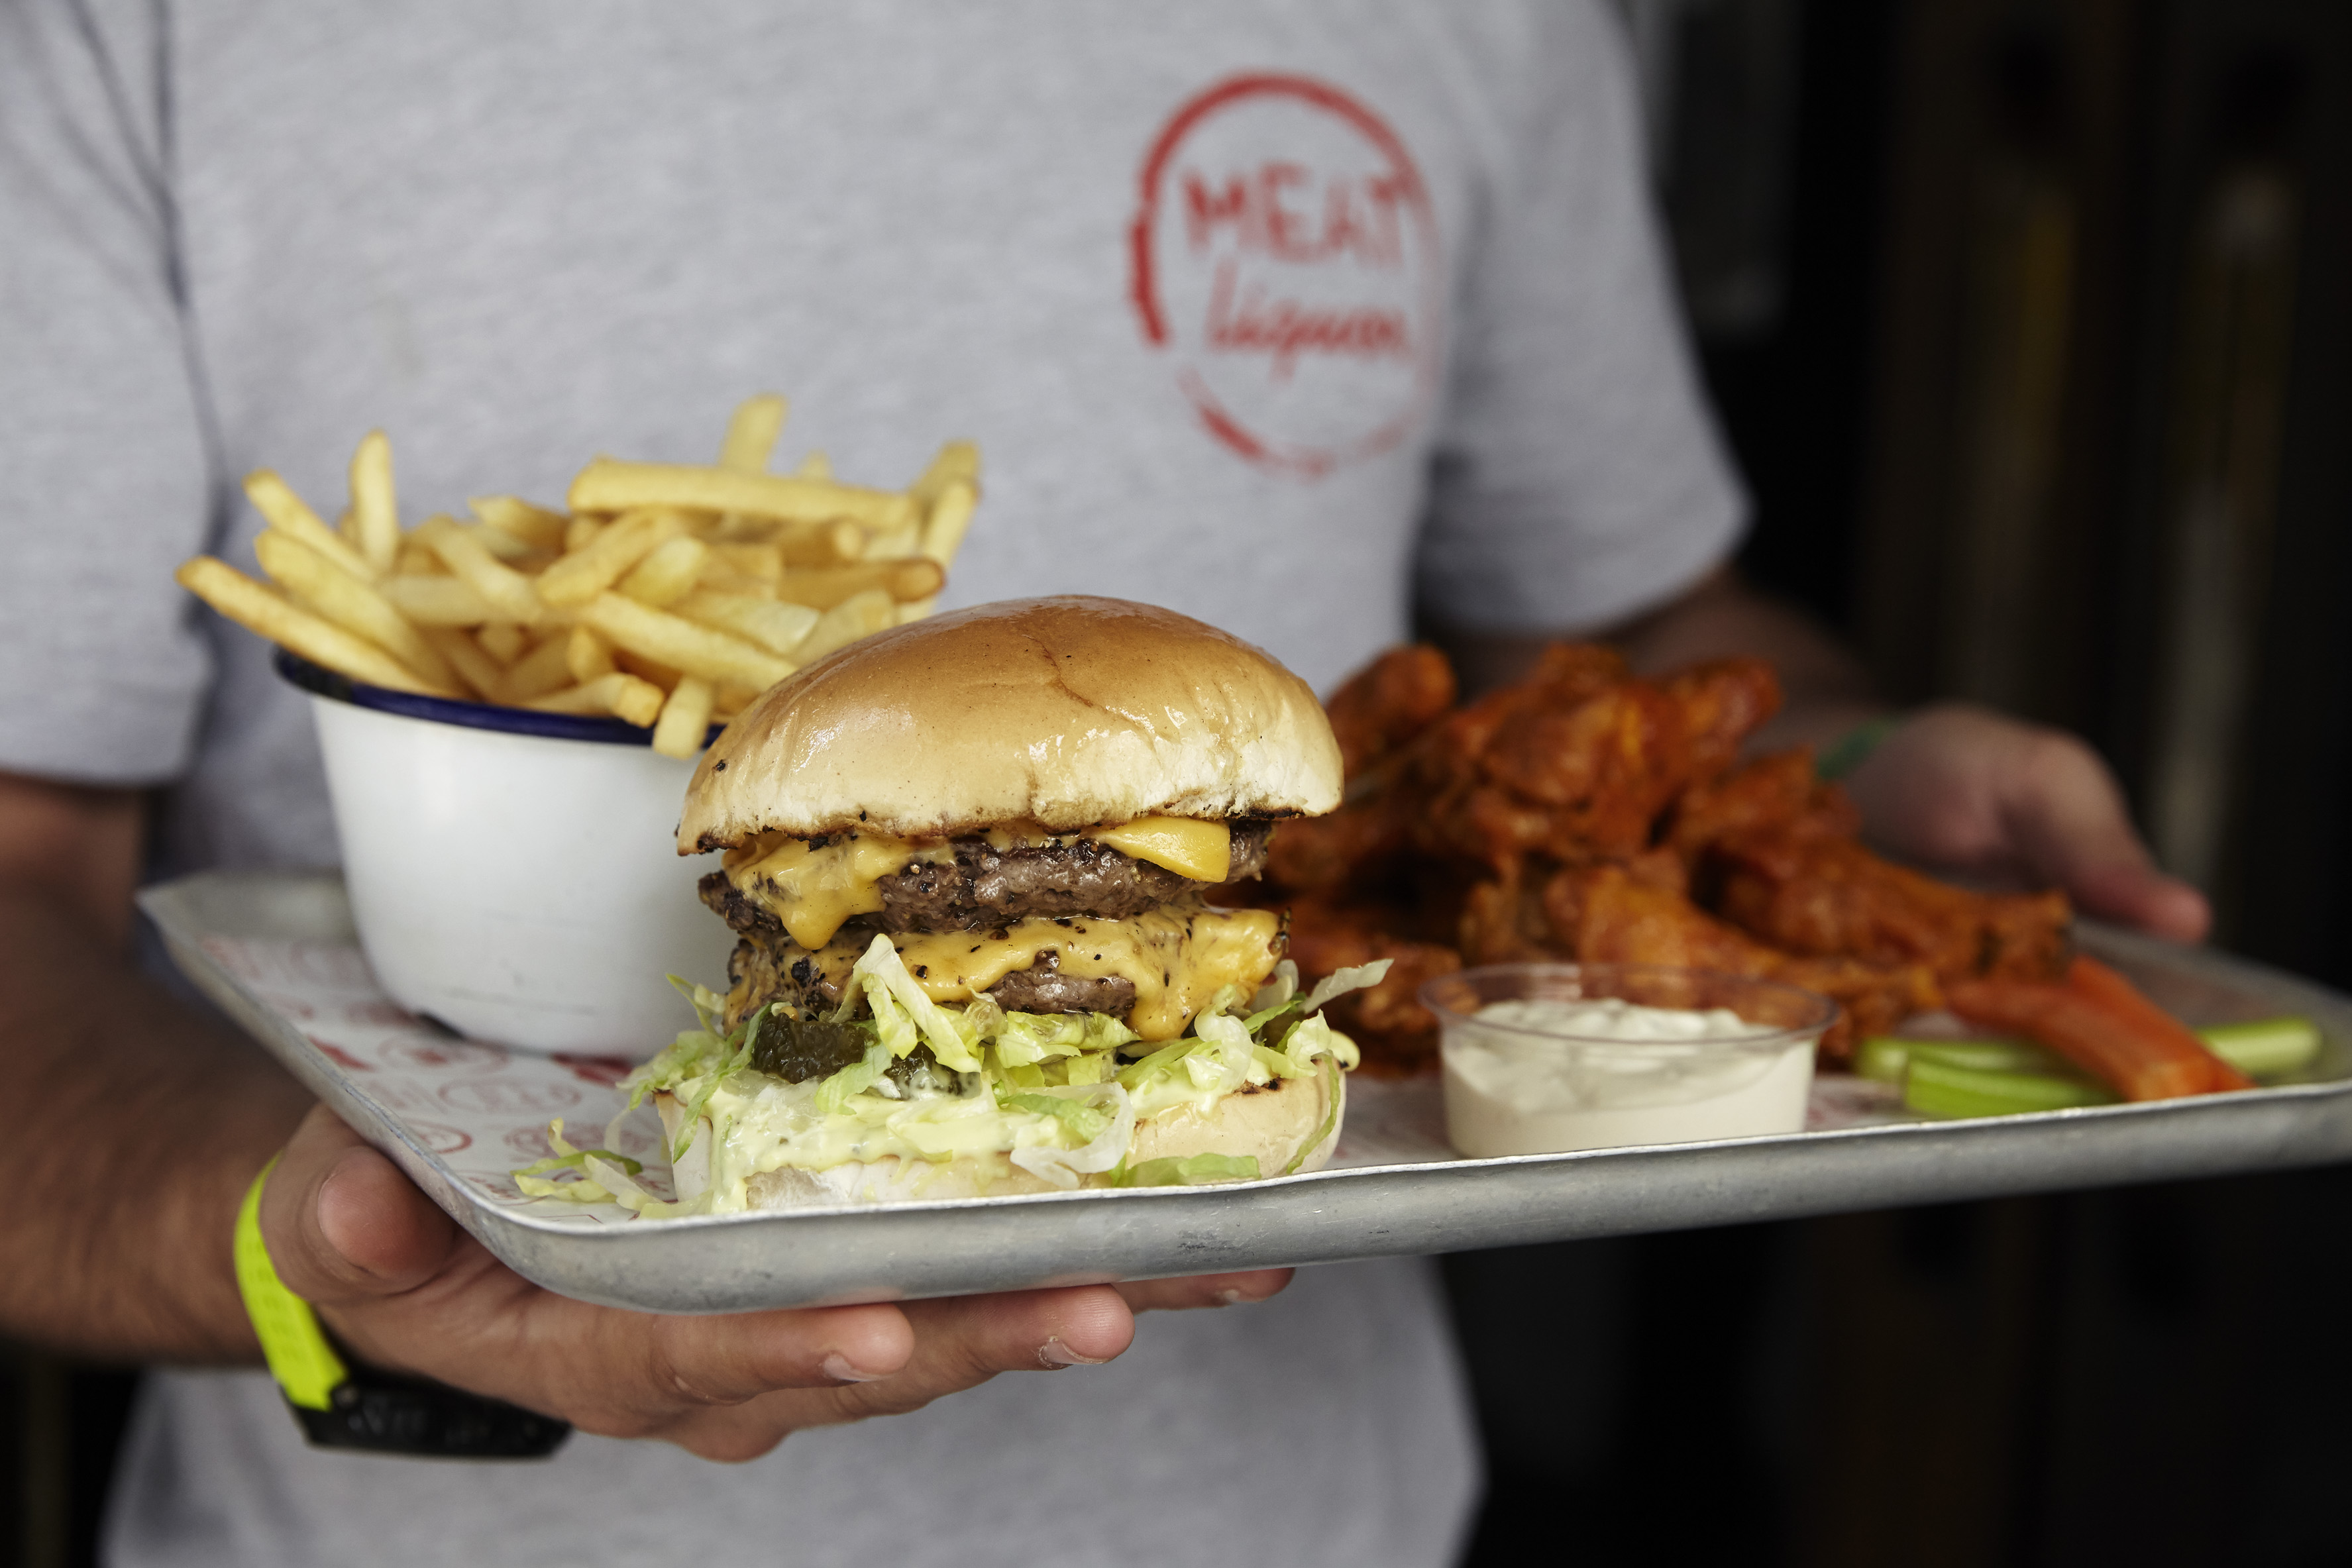 London burger restaurant Meatliquor will close in Brixton, but is looking for a new gourmet junk food site